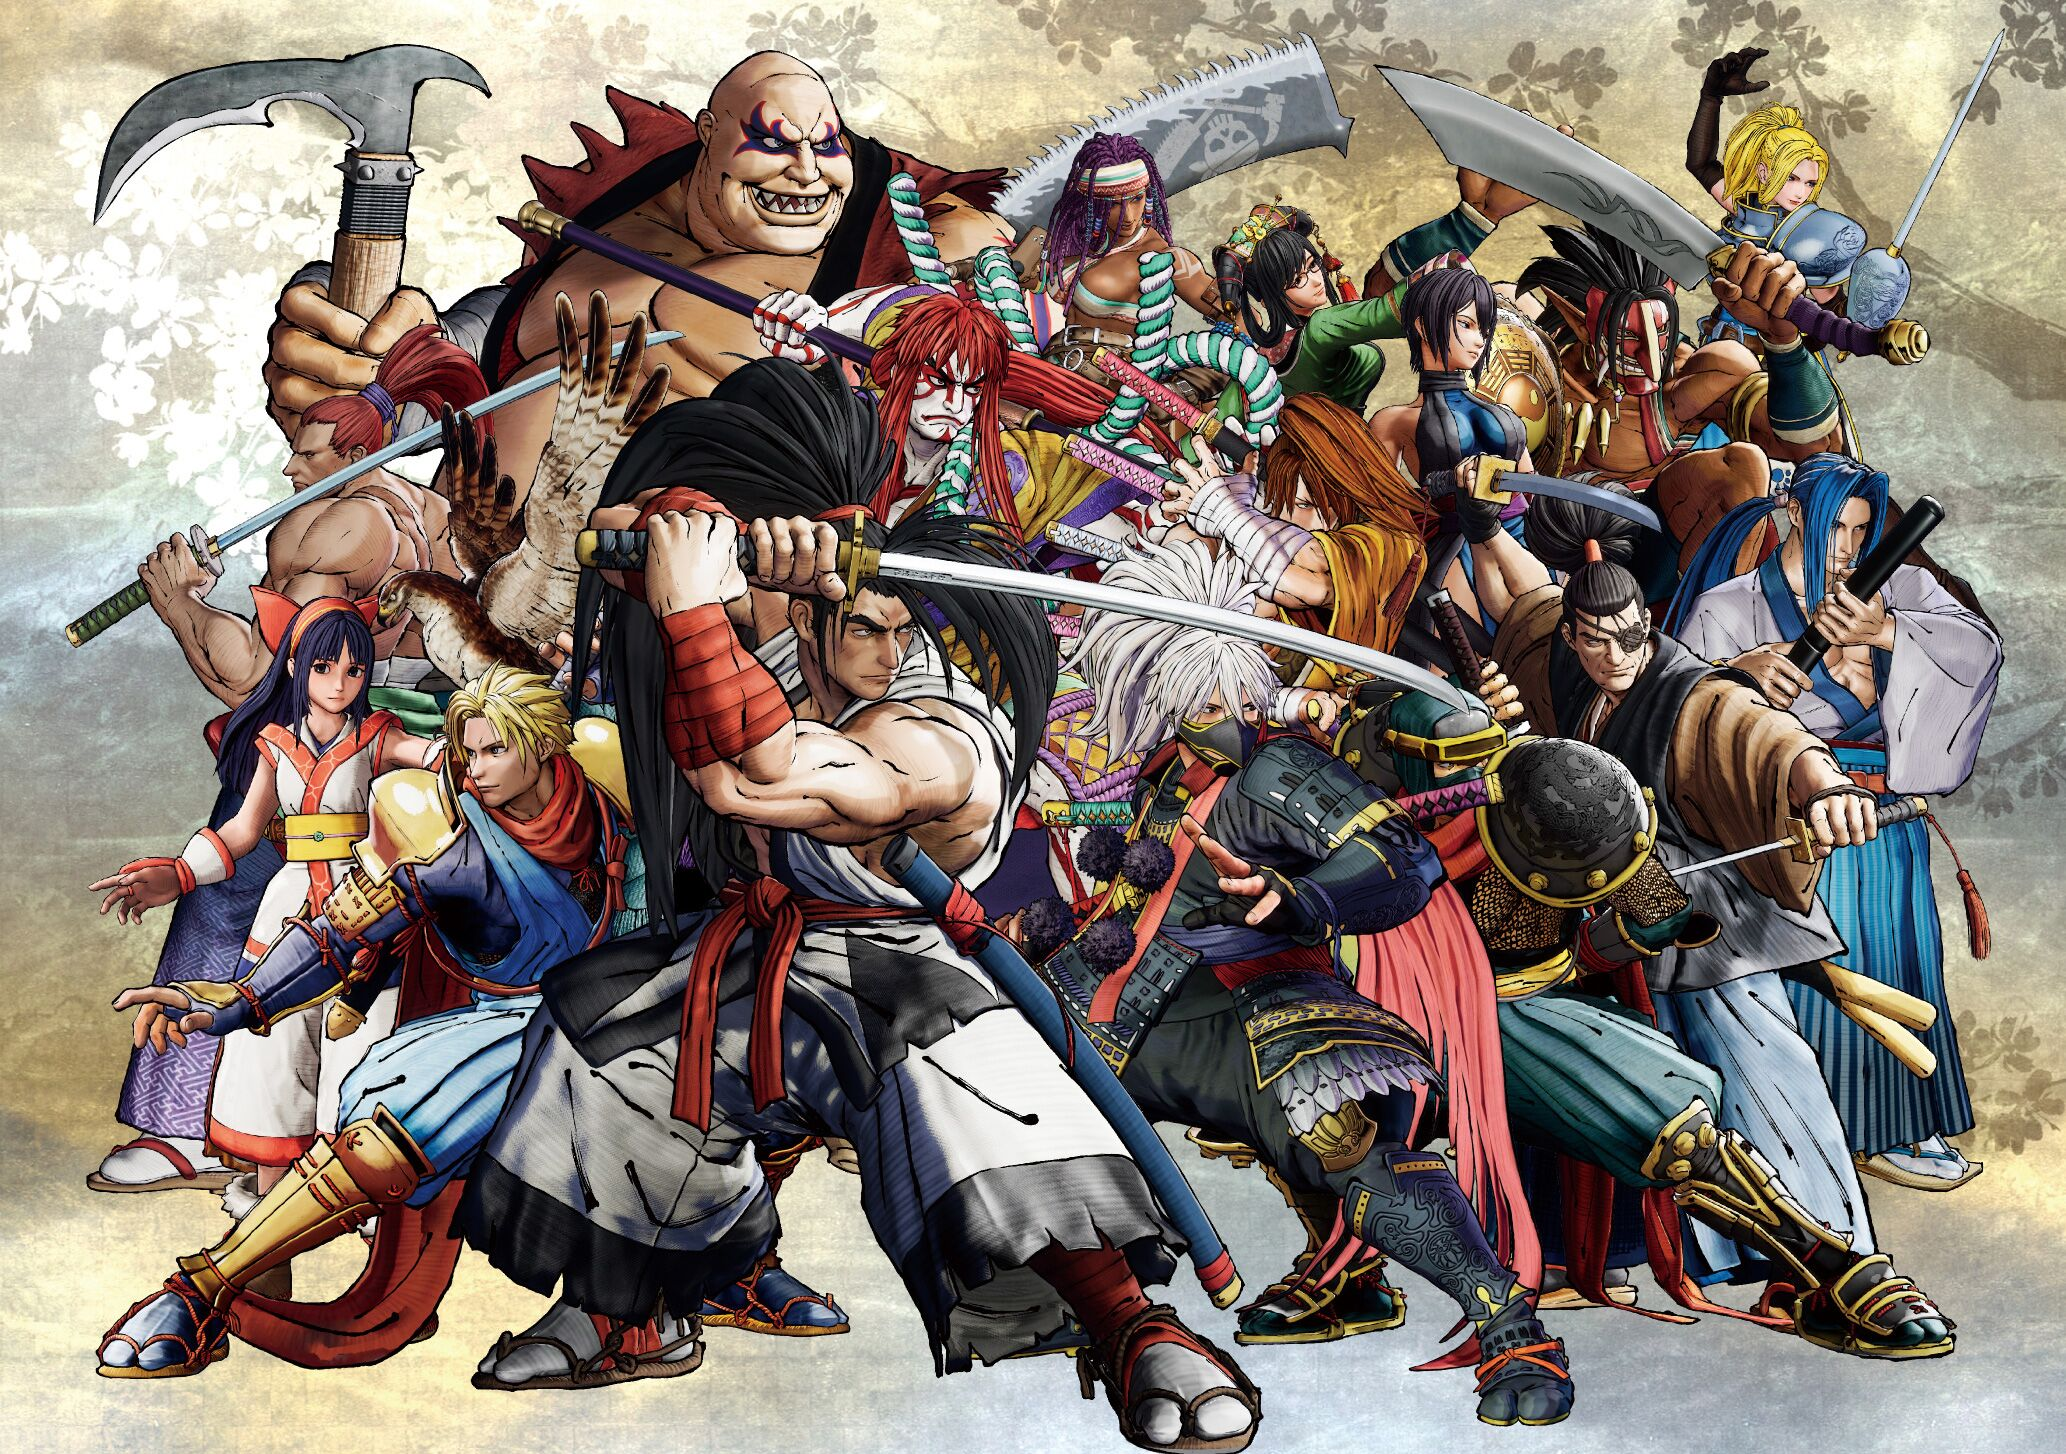 New Samurai Shodown game is now available on PS4 and Xbox One - Nerd